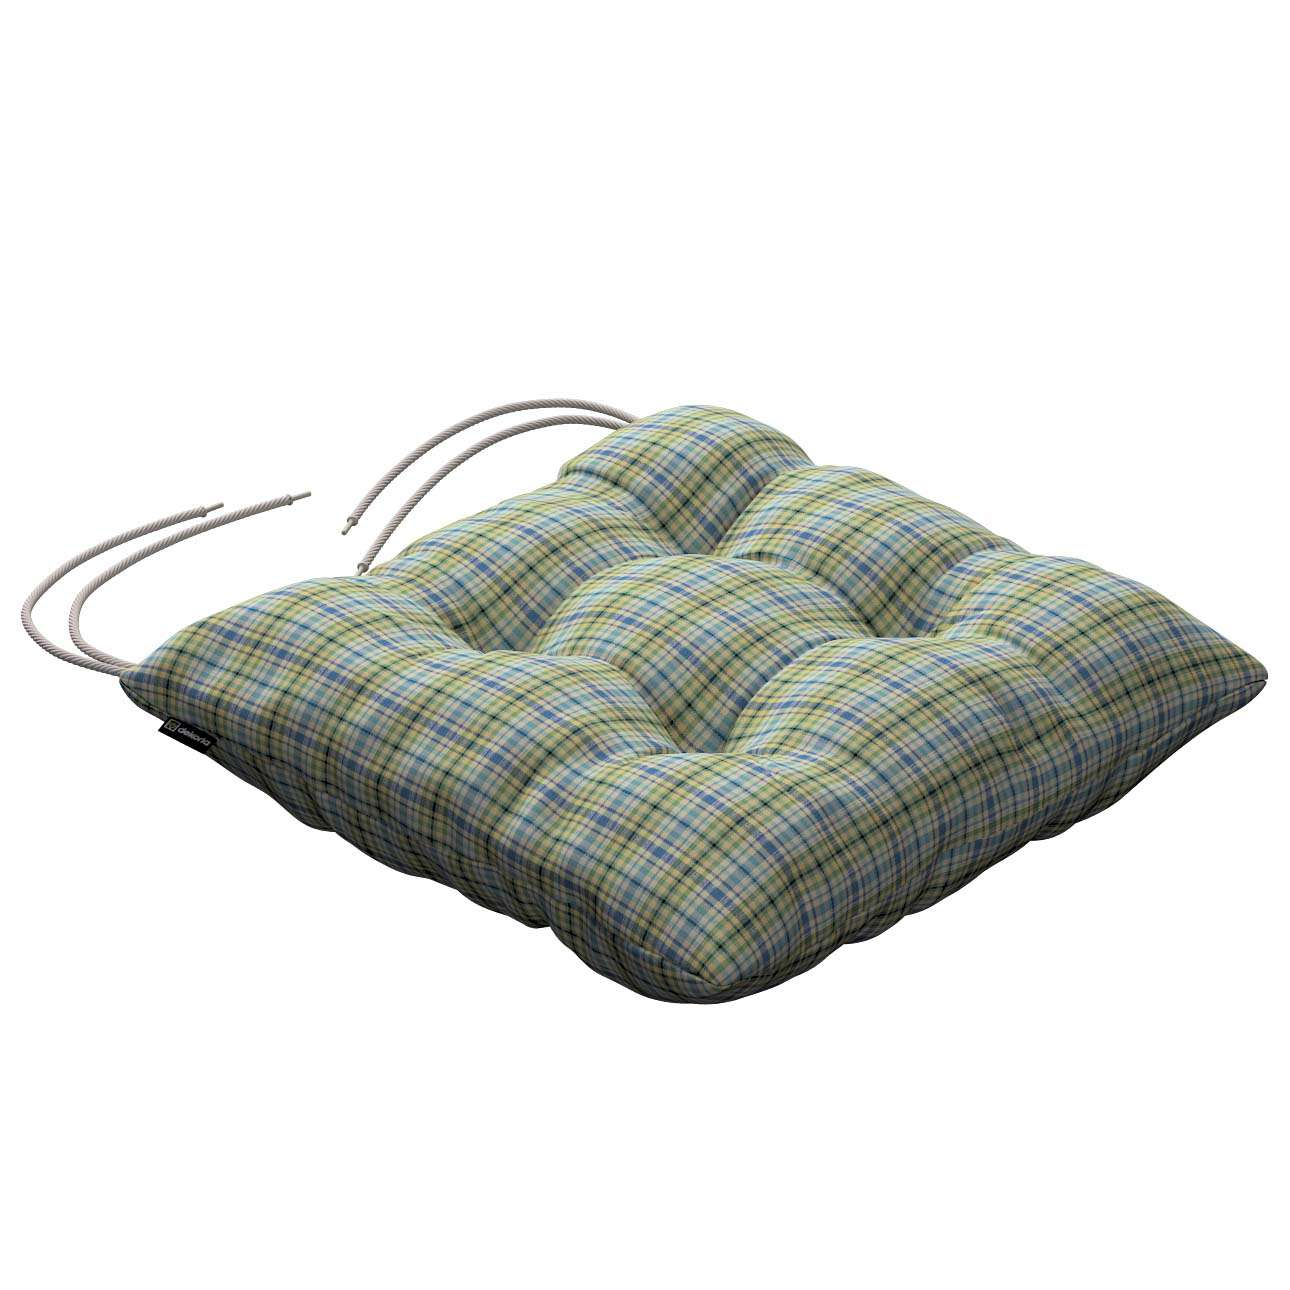 Jacek seat pad with ties 40 × 40 × 8 cm (16 × 16 × 3 inch) in collection Bristol, fabric: 126-69